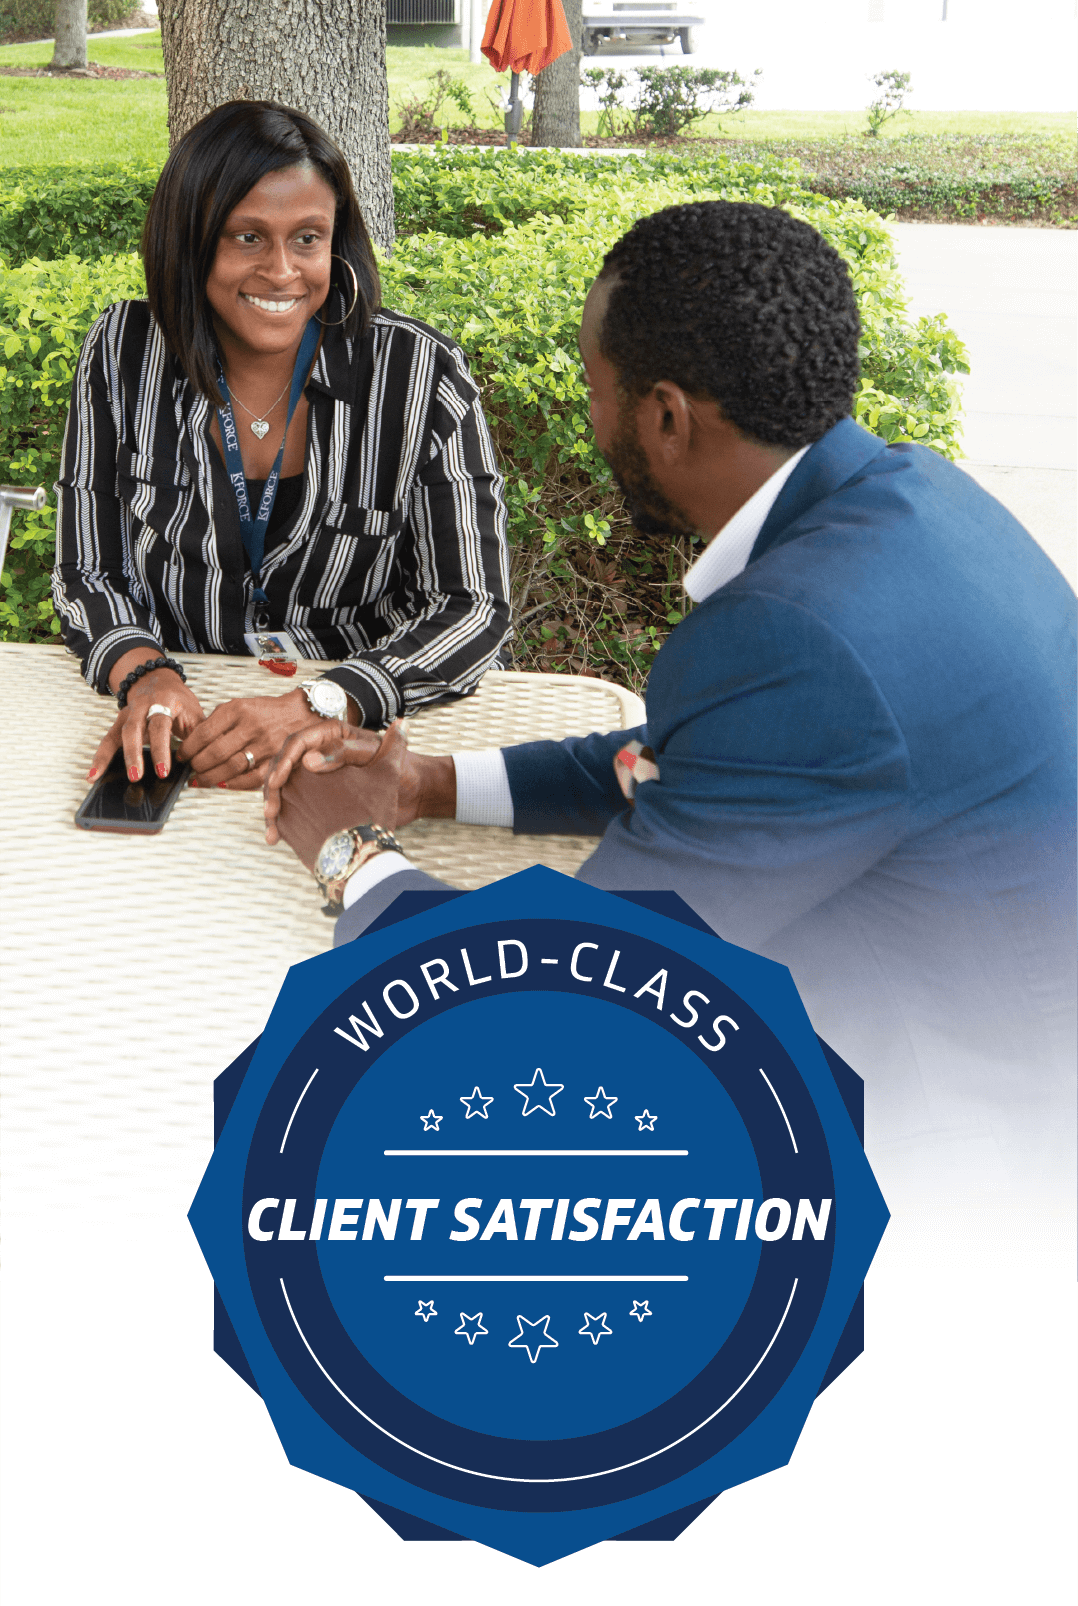 world class client satisfaction